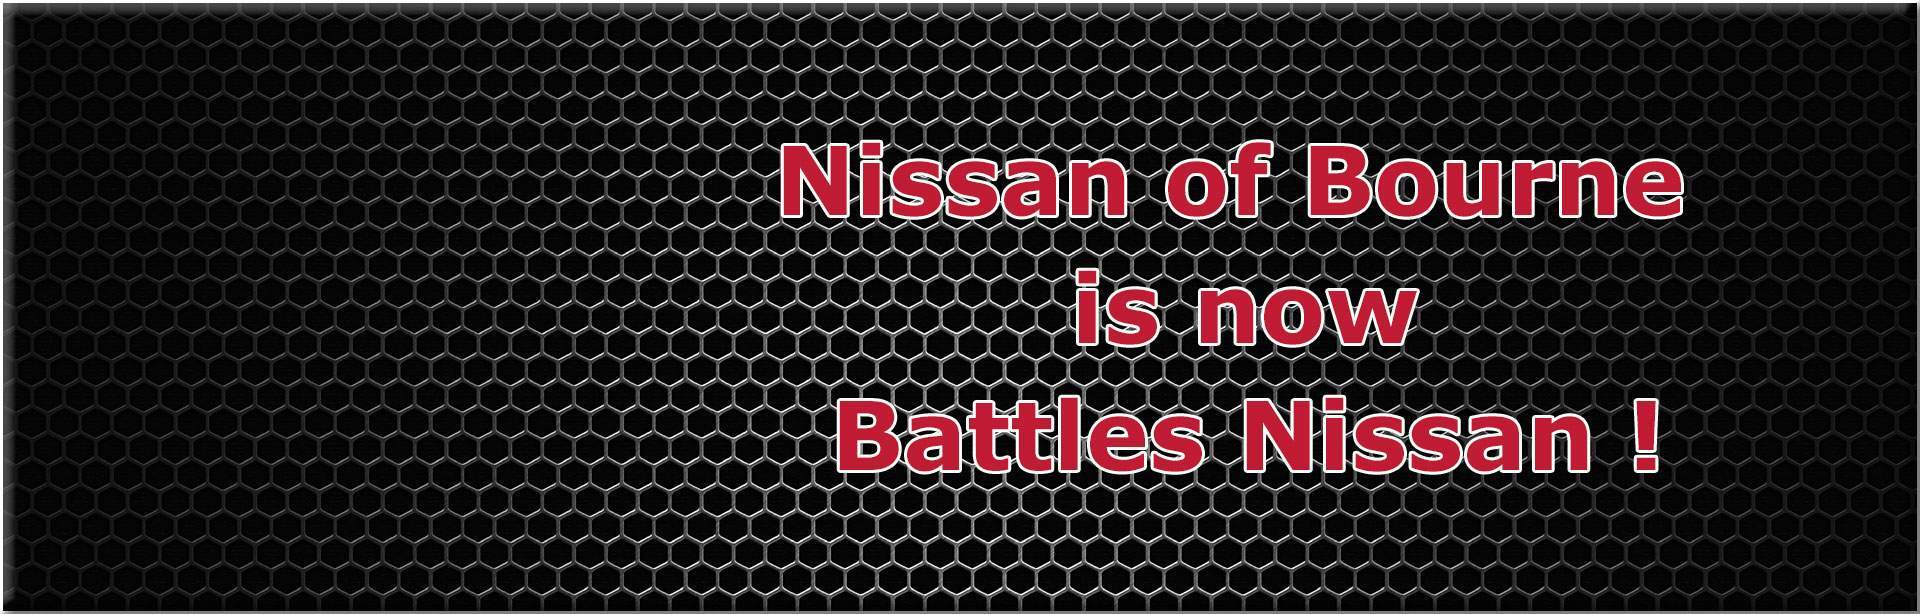 Nissan of Bourne is now Battles Nissan